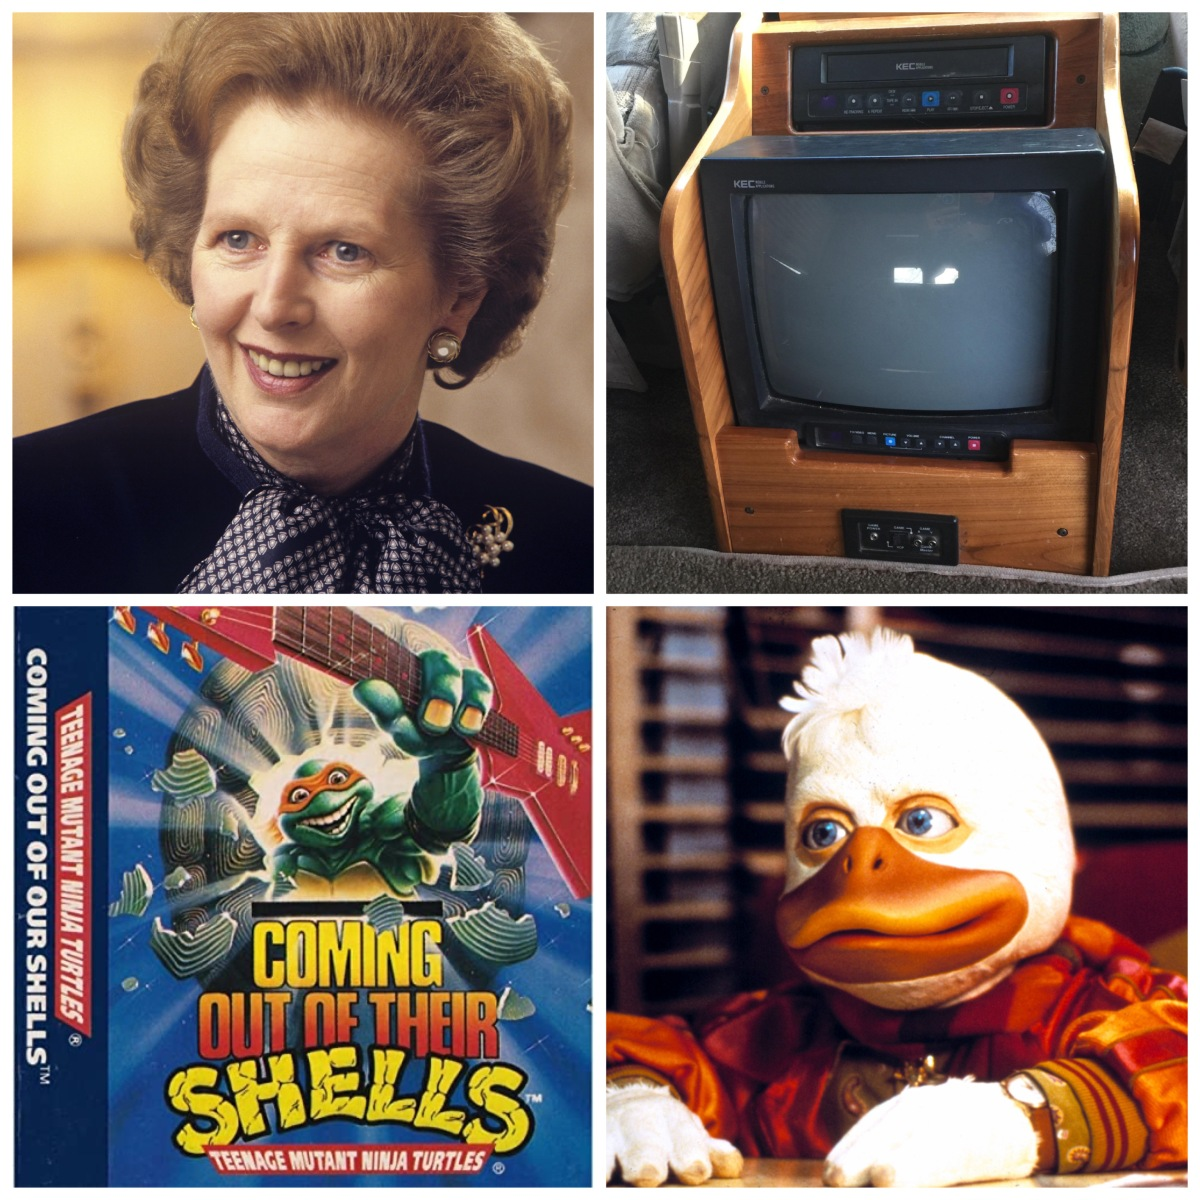 Margaret Thatcher, a Mini Van VHS player, Teenage Mutant Ninja Turtles Coming Out Of Their Shells, Howard The Duck.